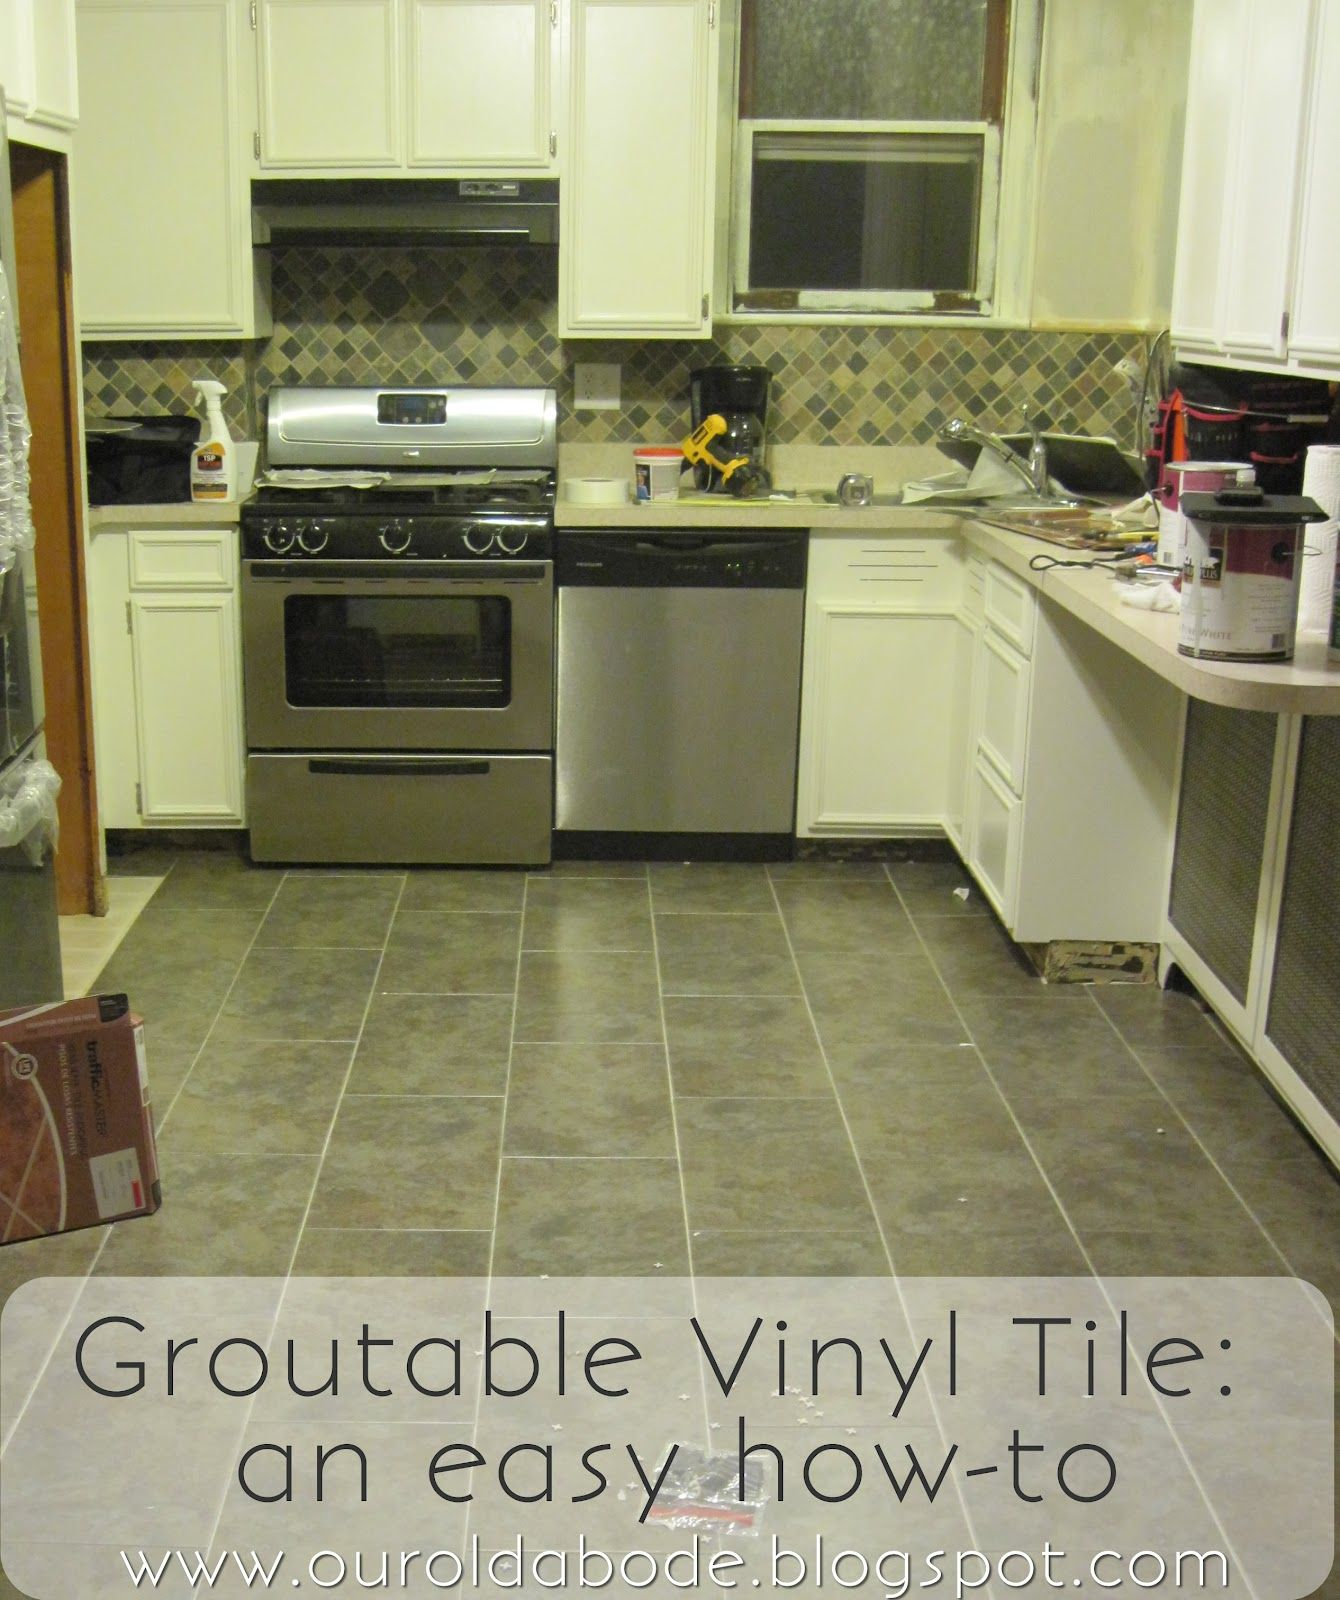 When researching options for our kitchen floor we knew we wanted our old abode kitchen floor groutable vinyl tile dailygadgetfo Choice Image